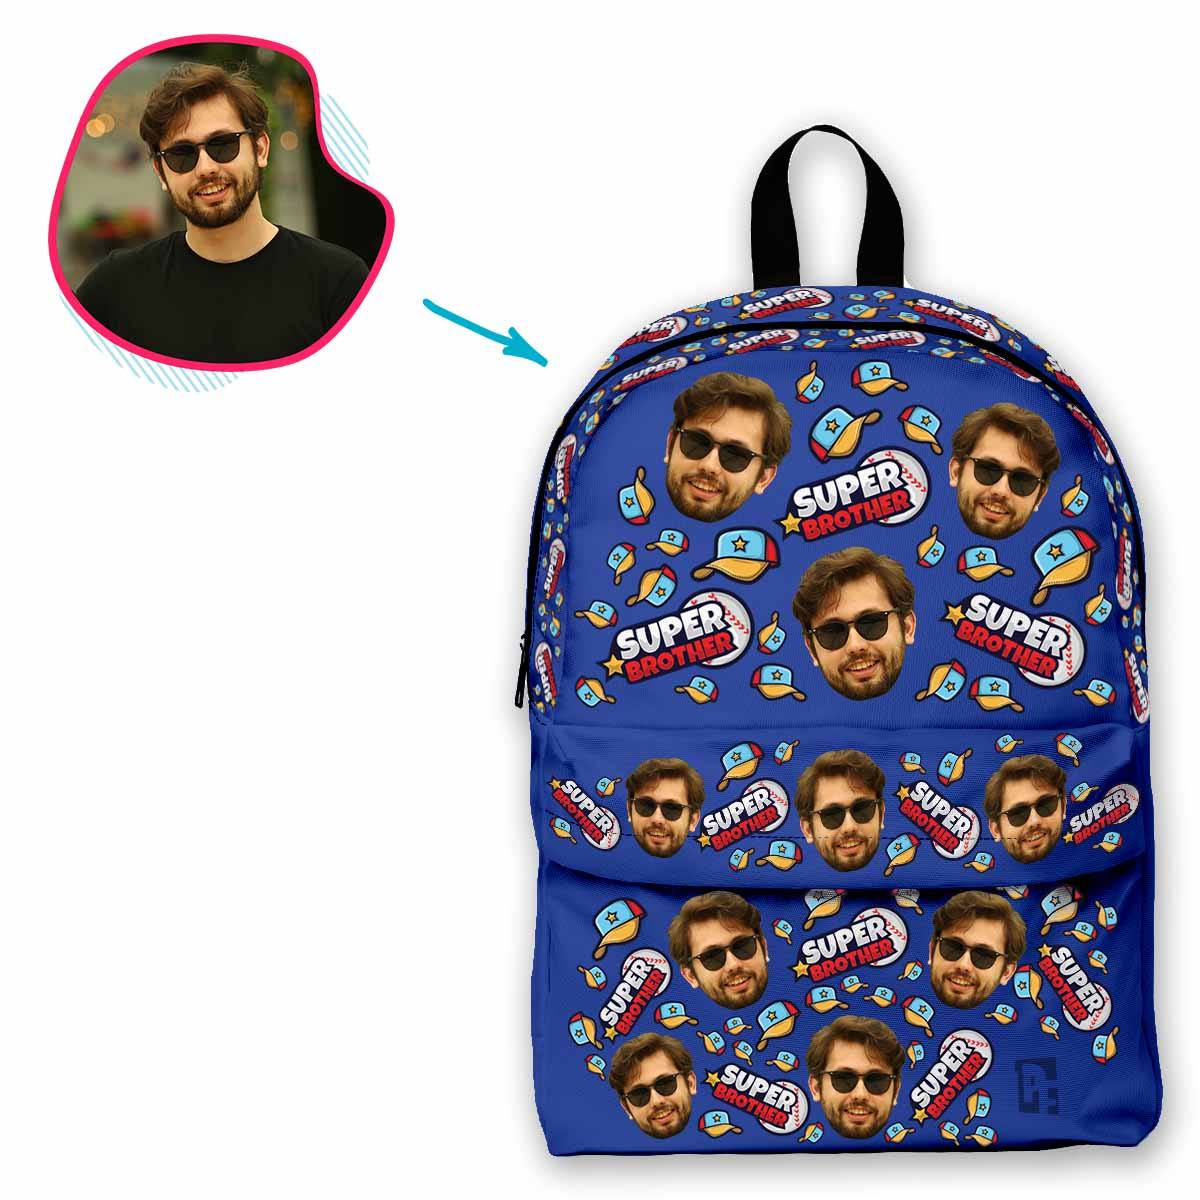 darkblue Super Brother classic backpack personalized with photo of face printed on it